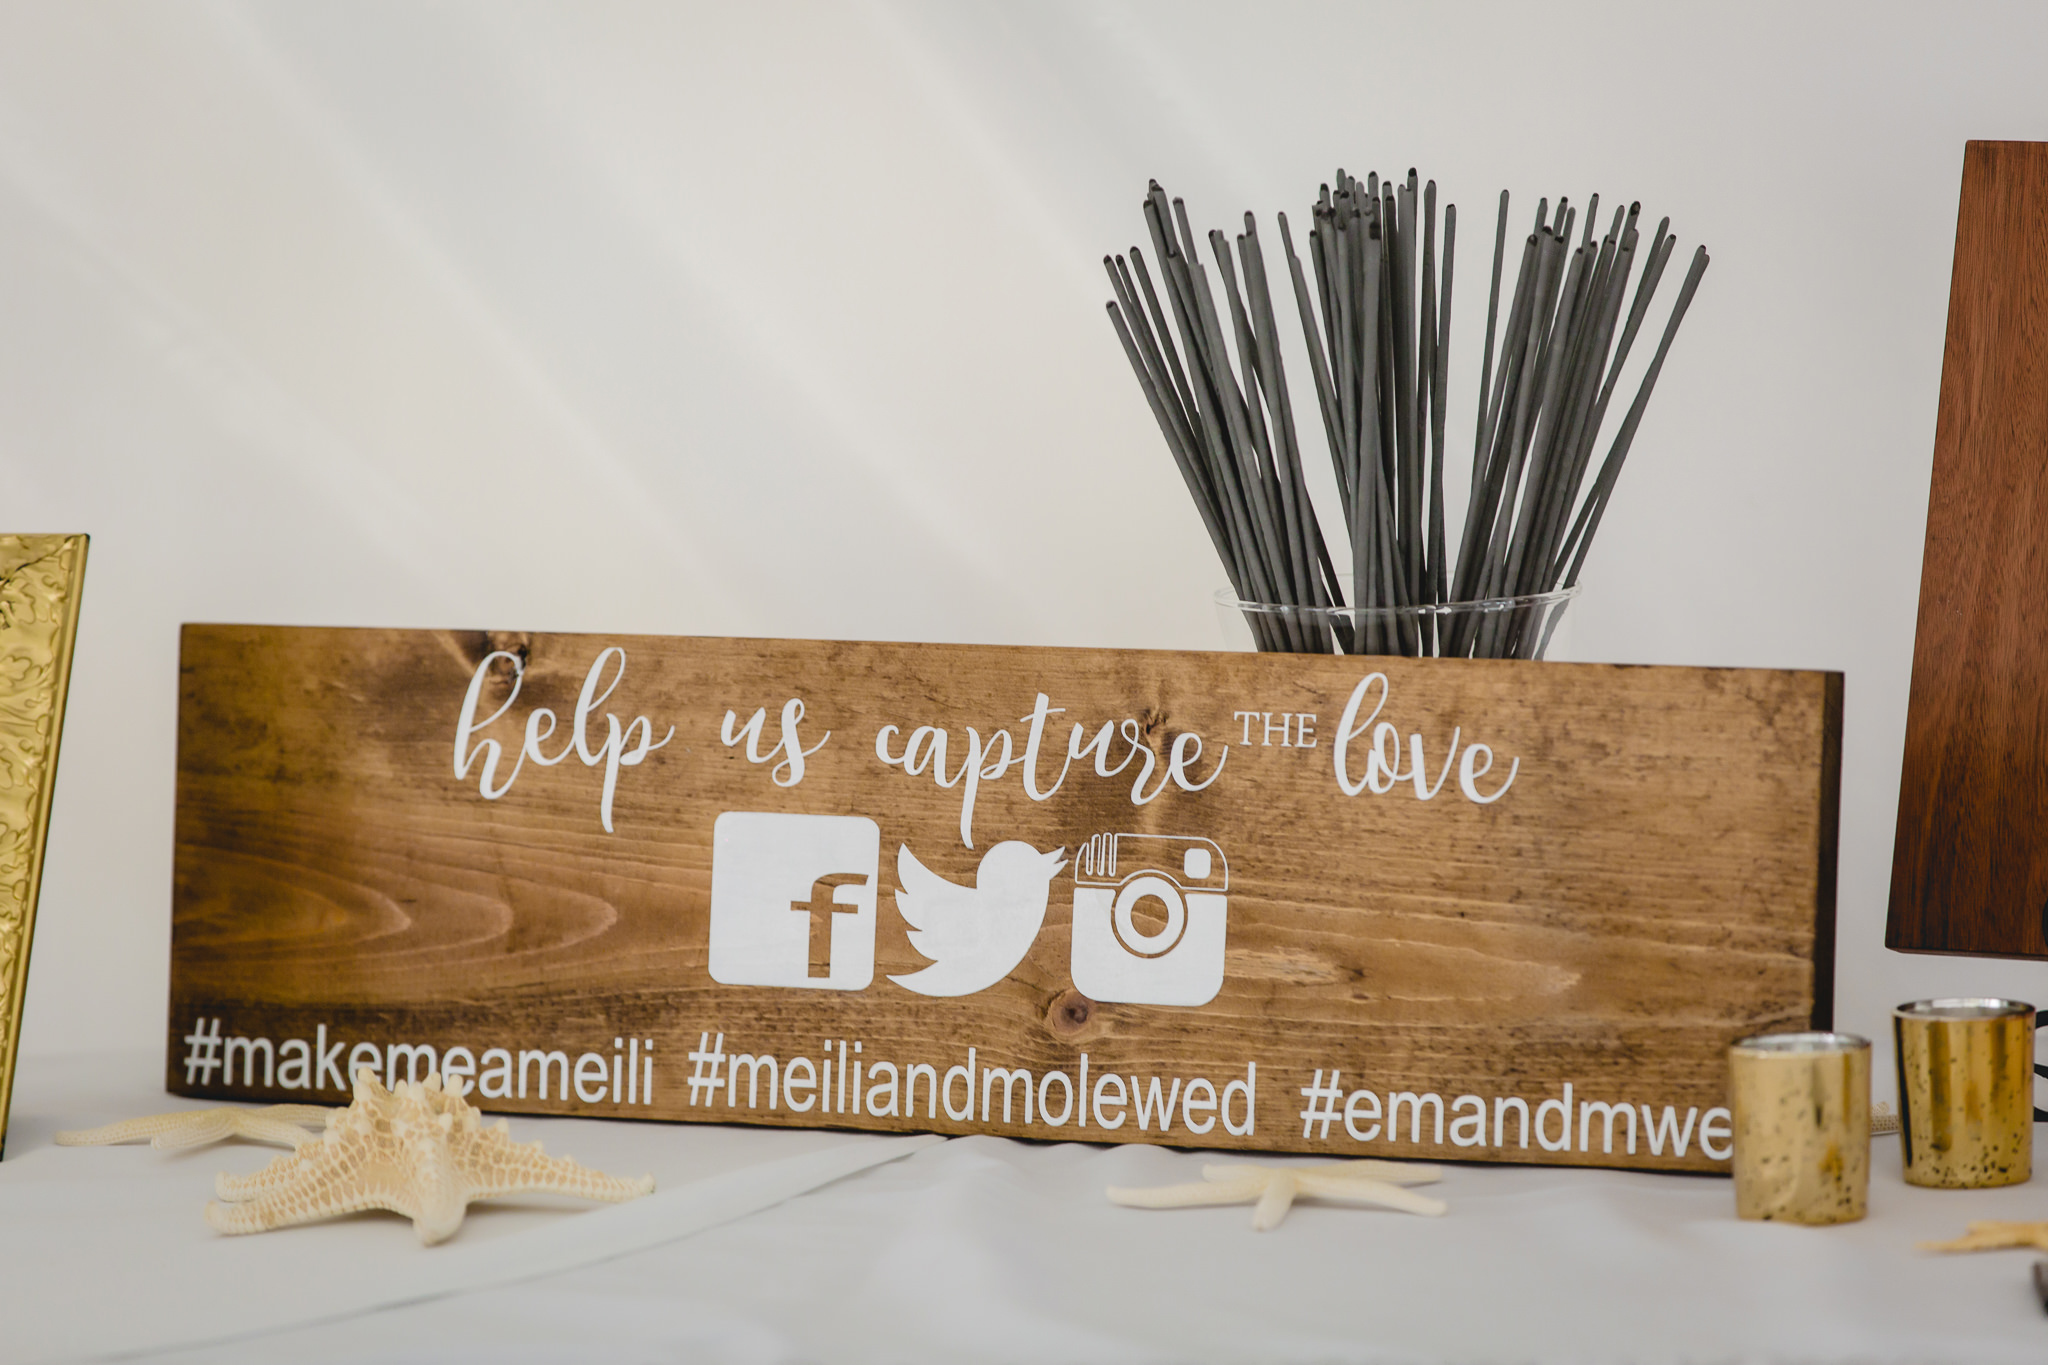 Social media sign containing wedding day hashtags for Facebook, Twitter, & Instagram